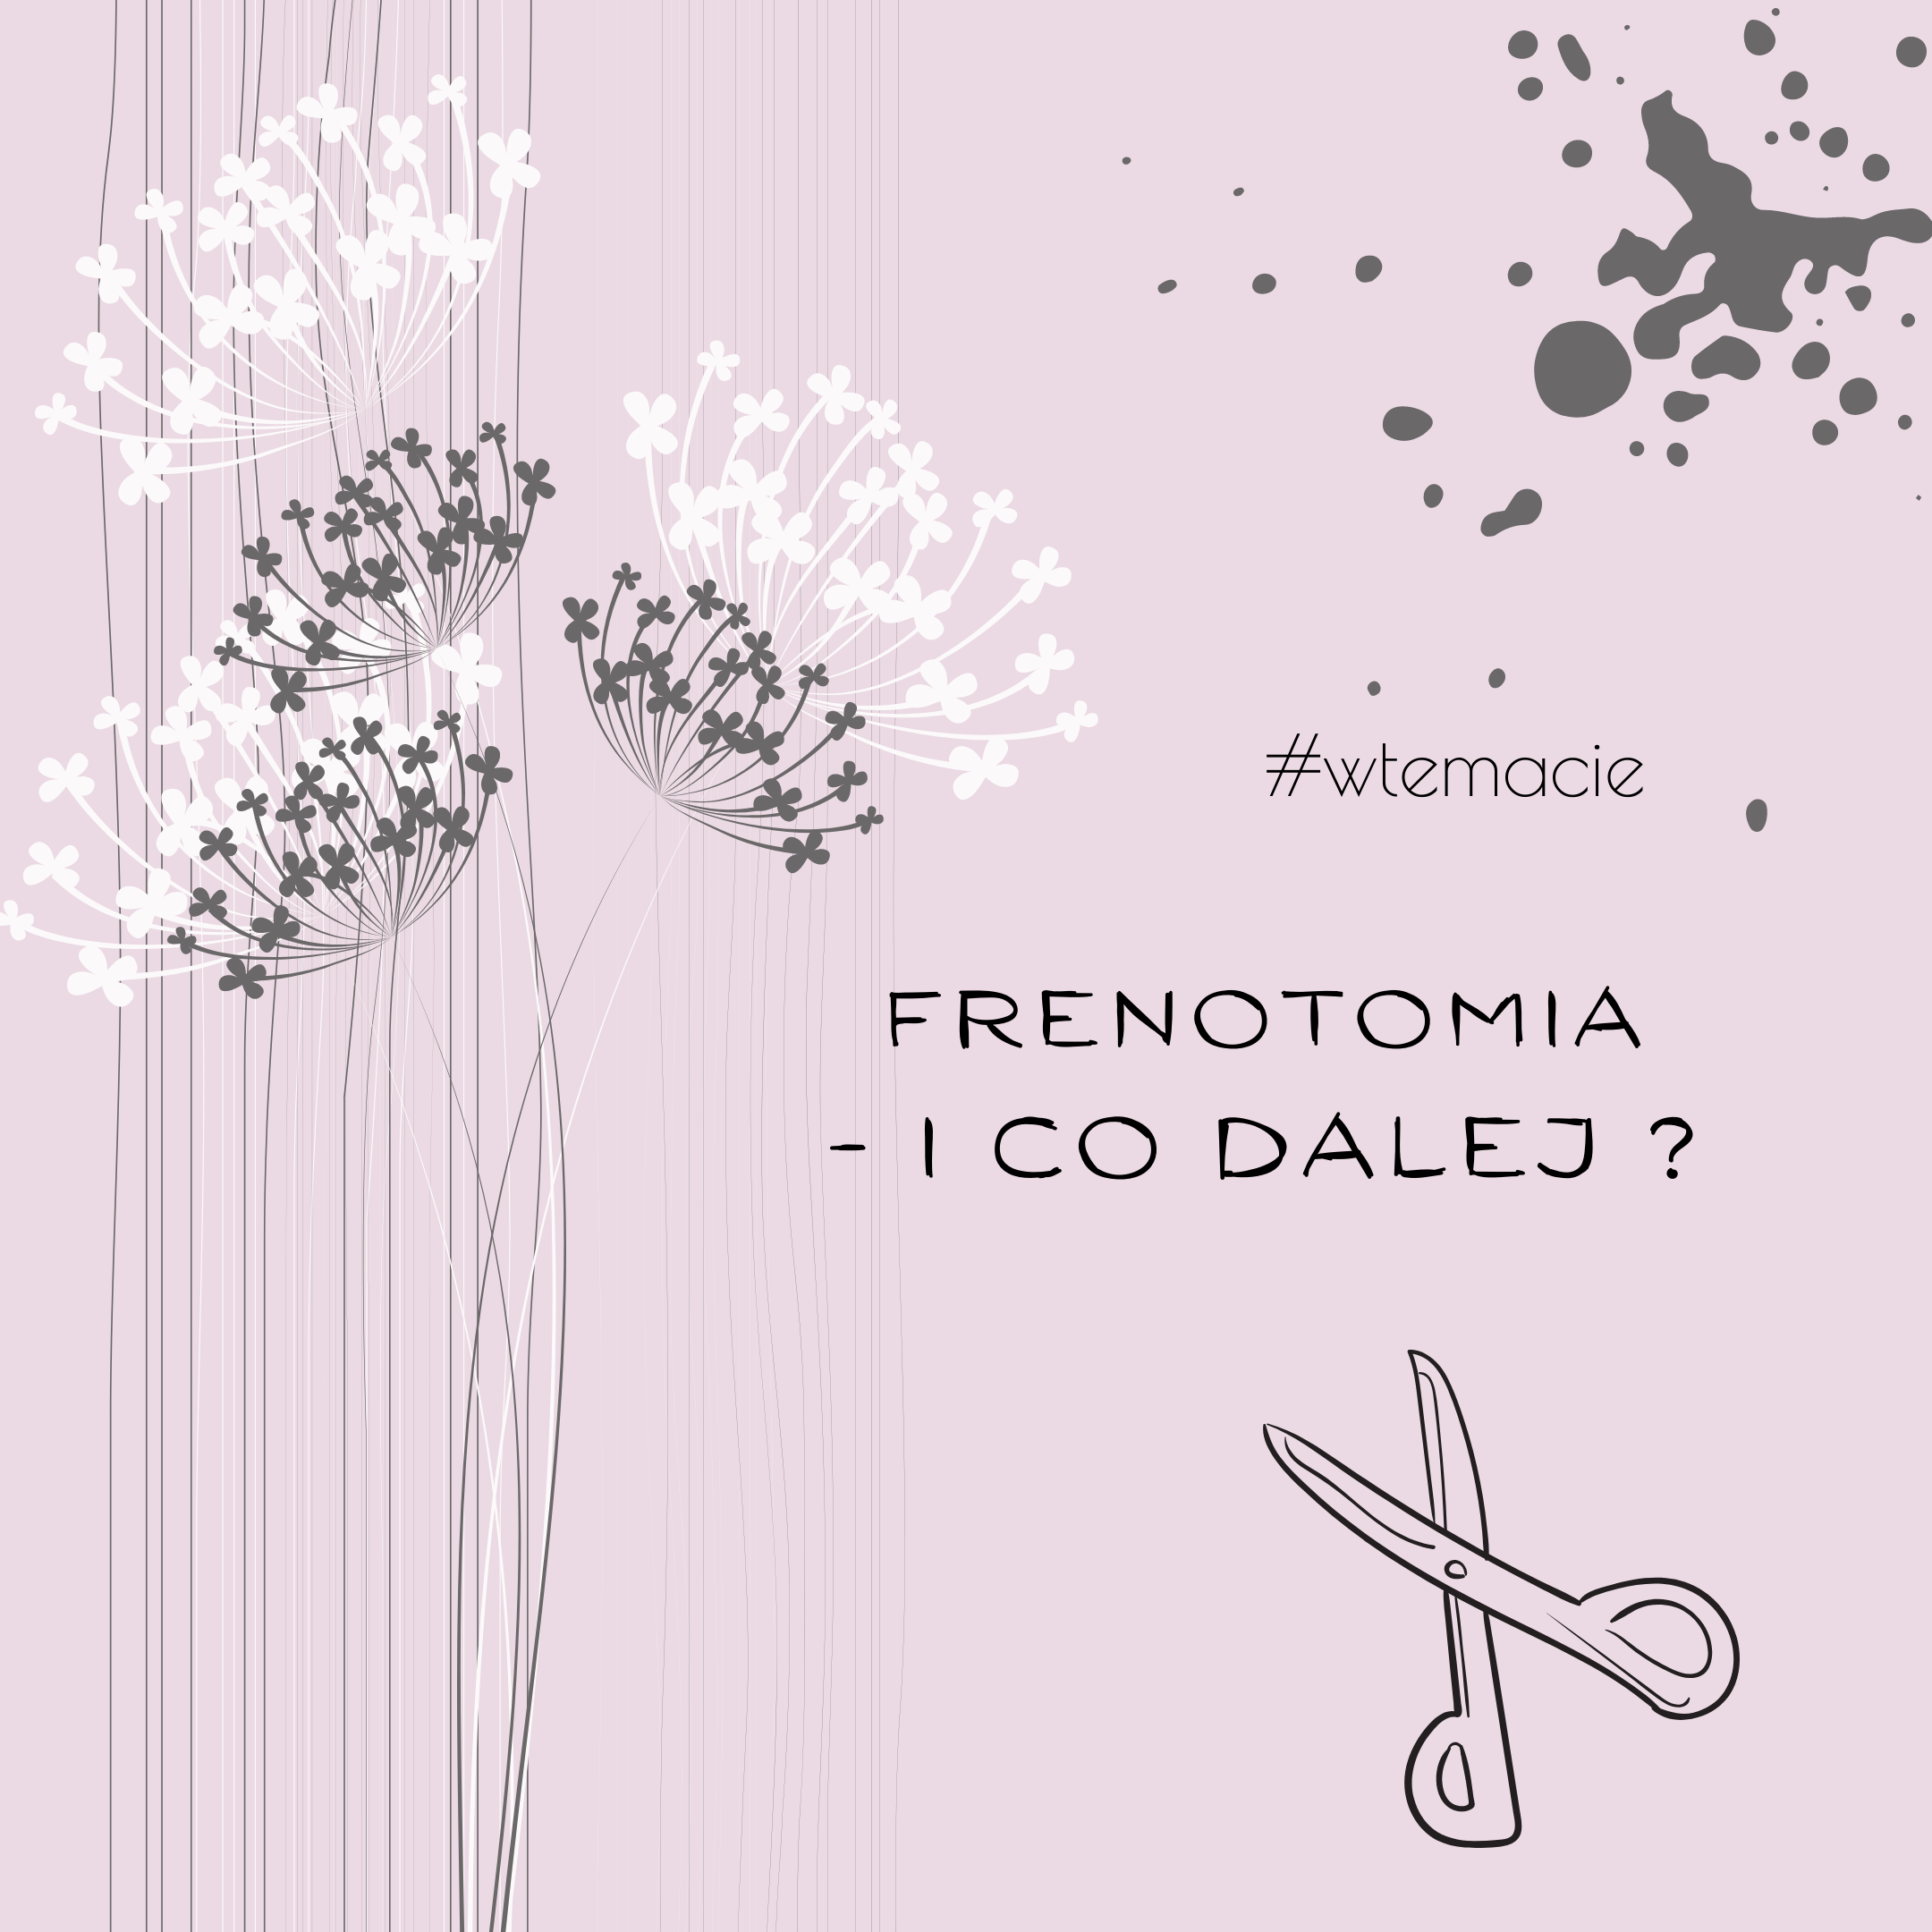 Frenotomia. I co dalej?